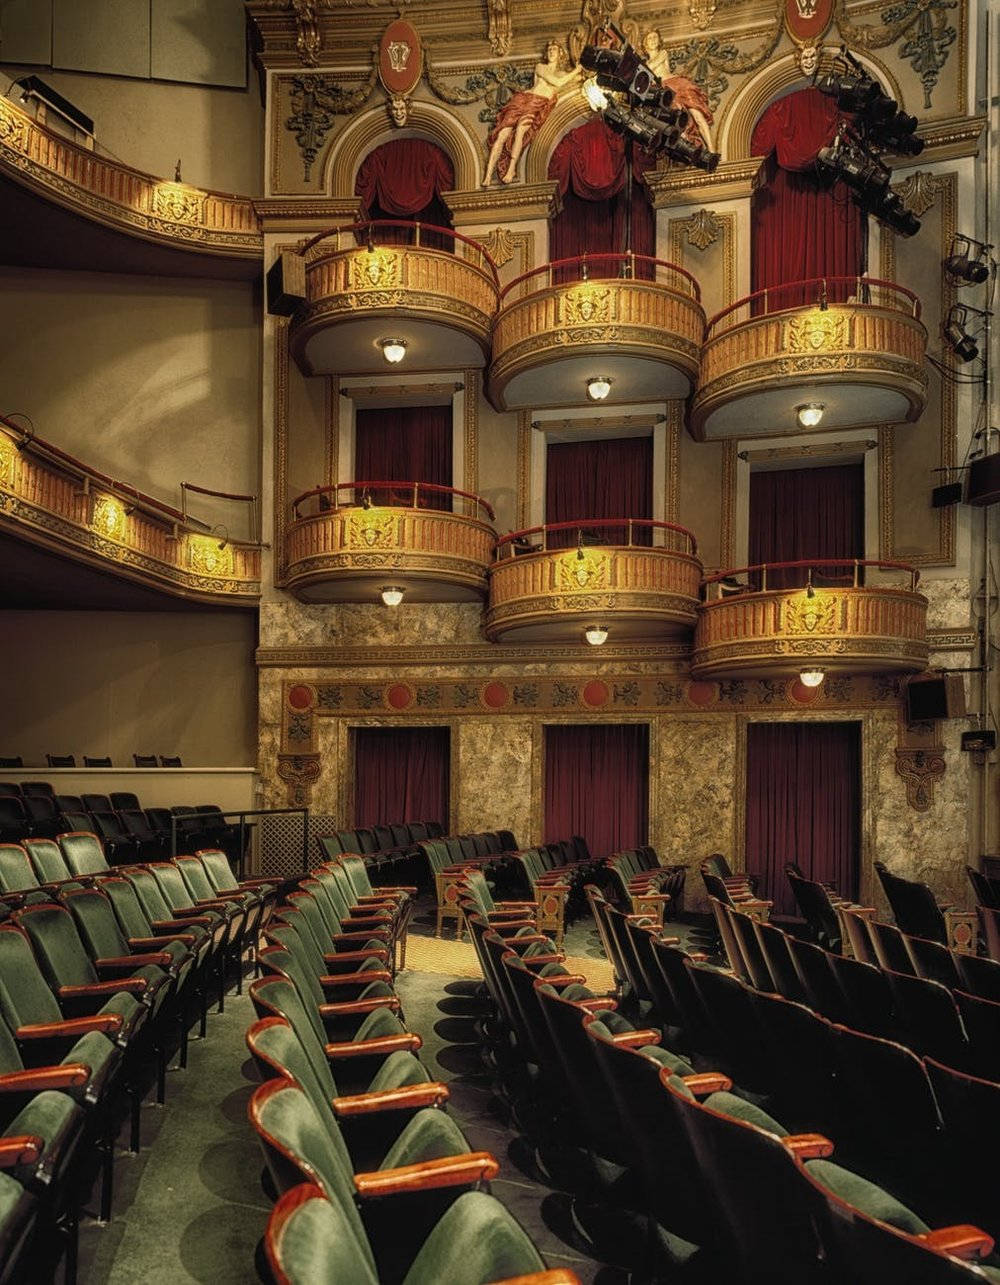 wells-theatre-norfolk-virginian-seats-63328.jpg